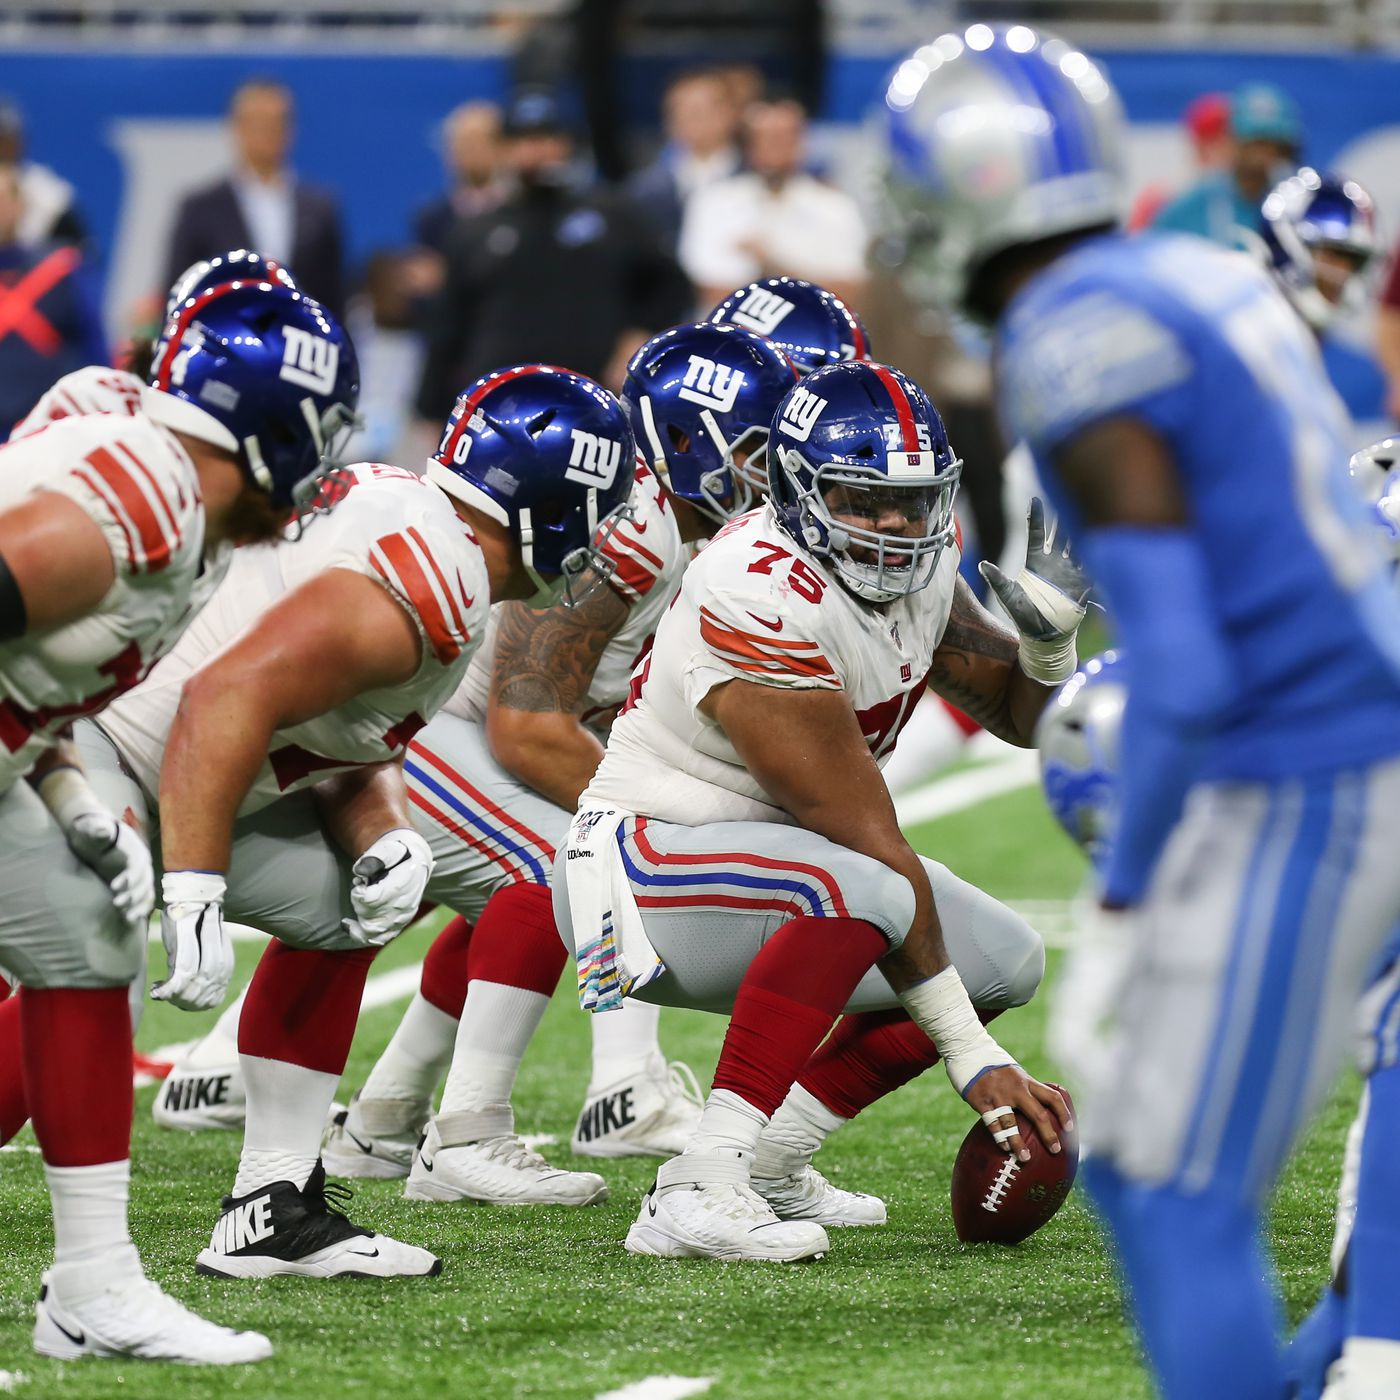 New York Giants Roster Ranked No 27 In Nfl By Espn Big Blue View